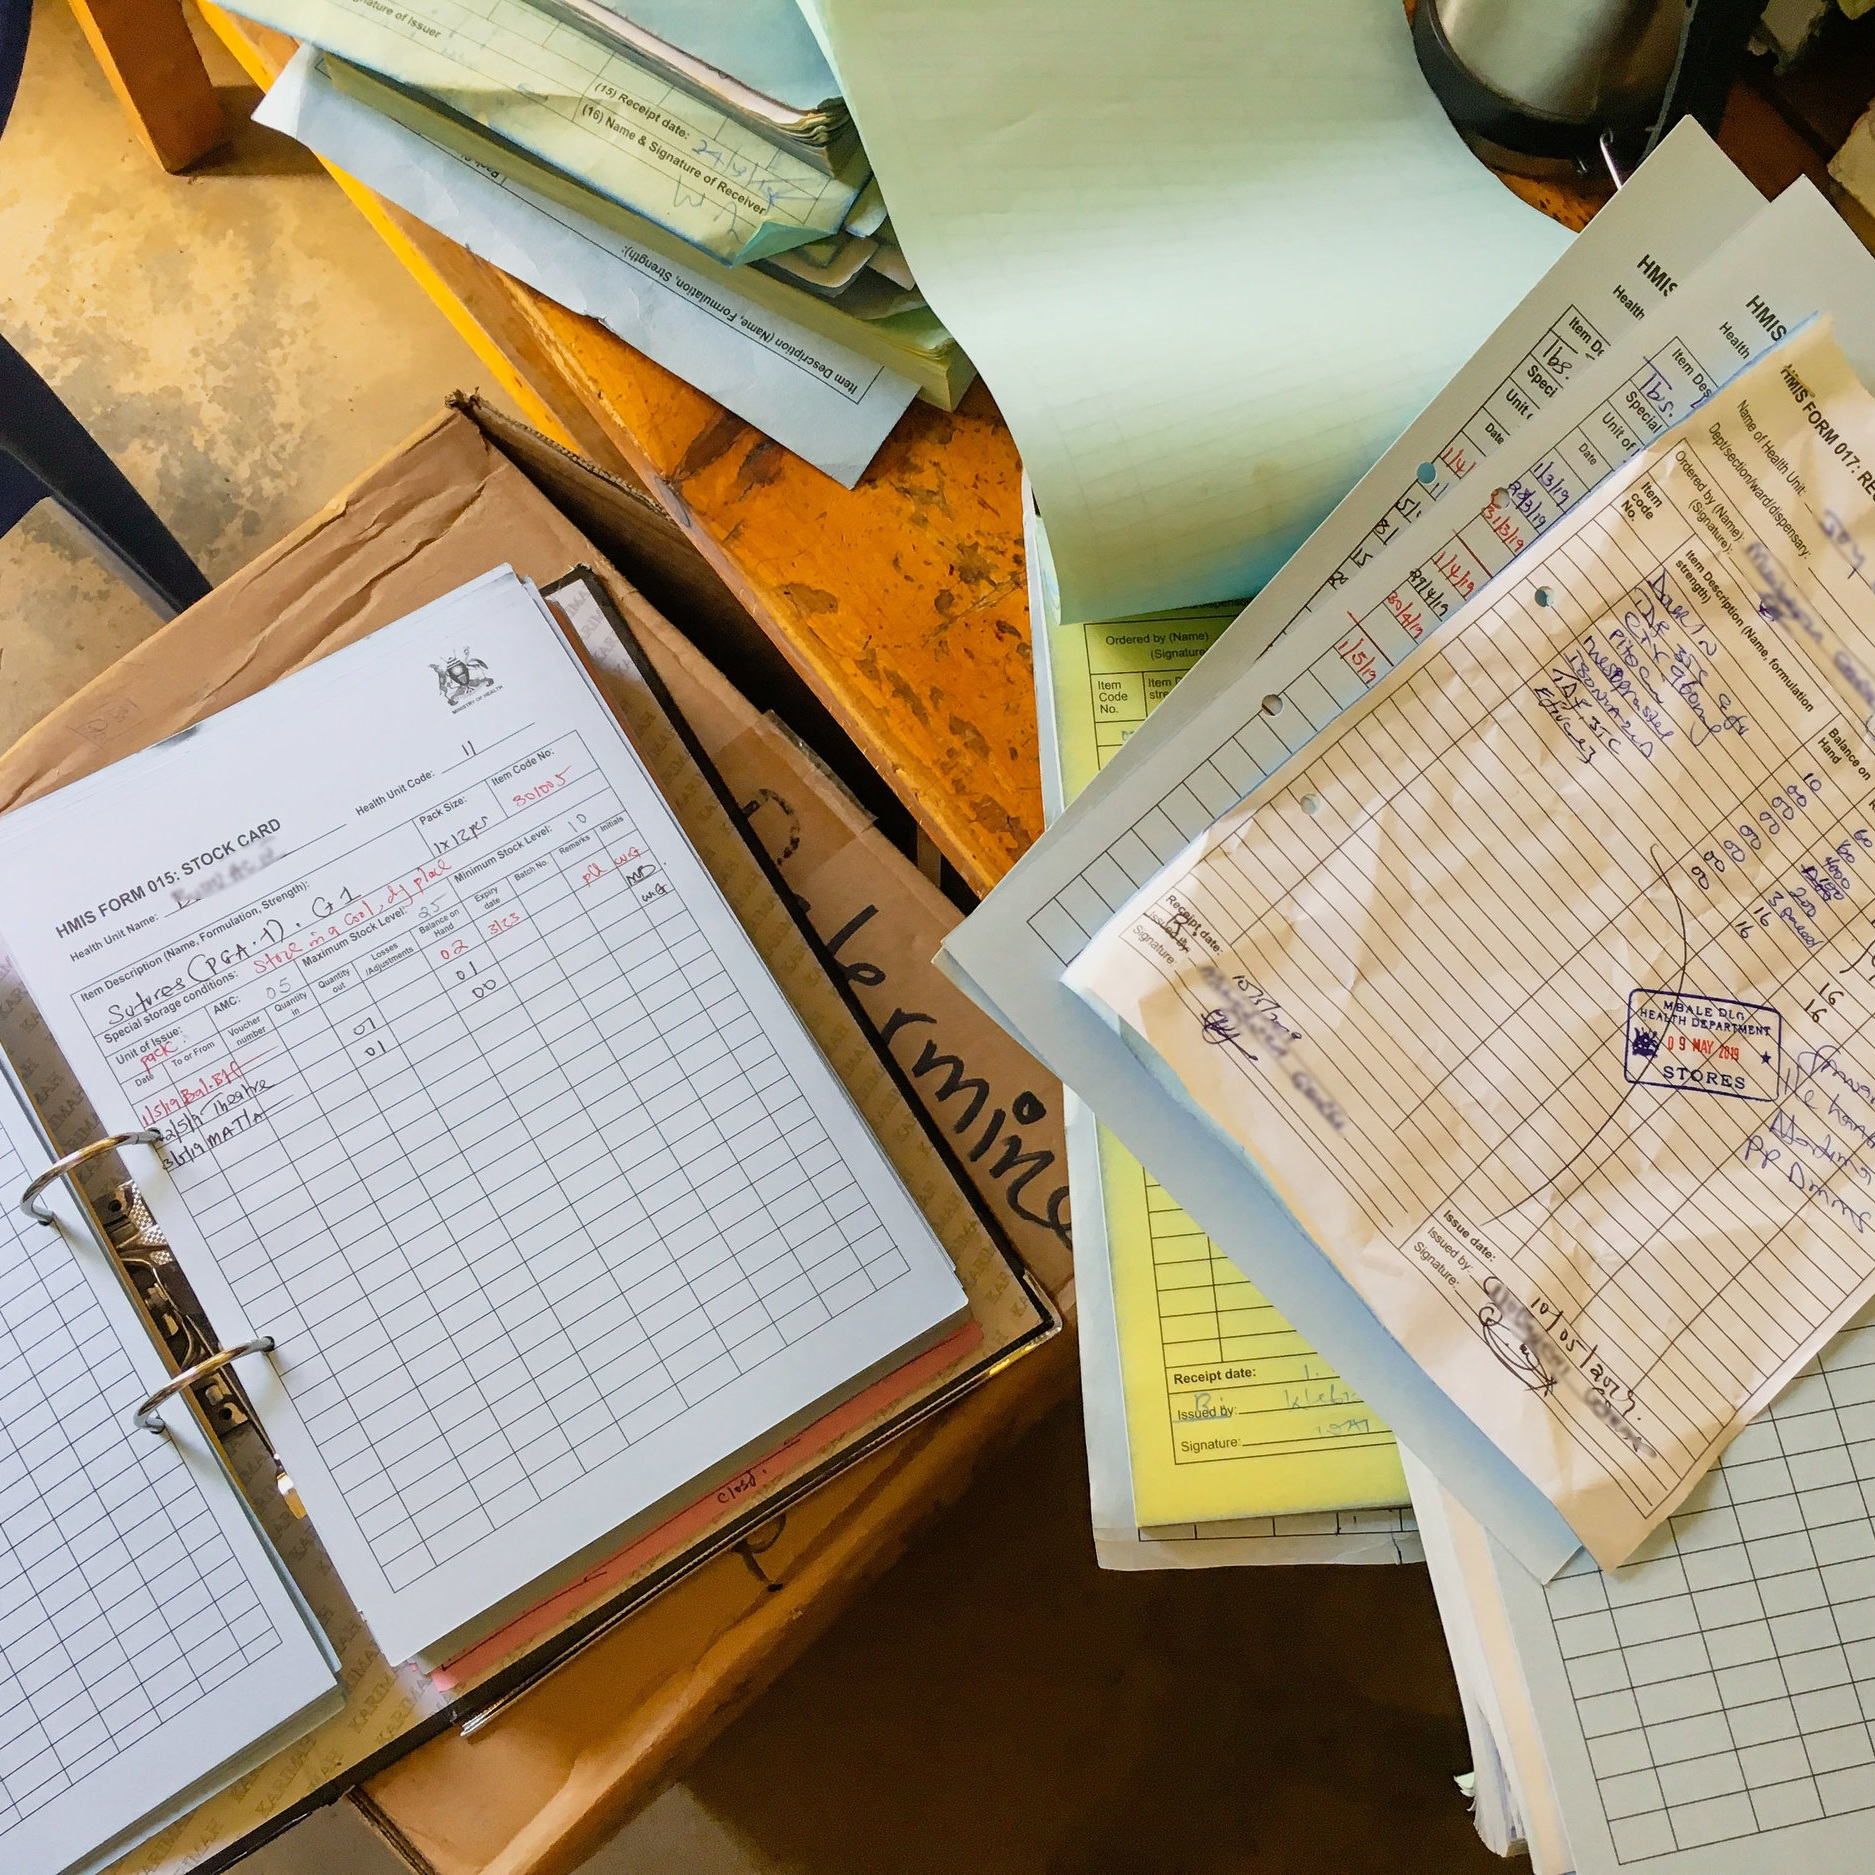 Often, medical records and information are kept only on paper throughout the public health systems in the communities we serve.